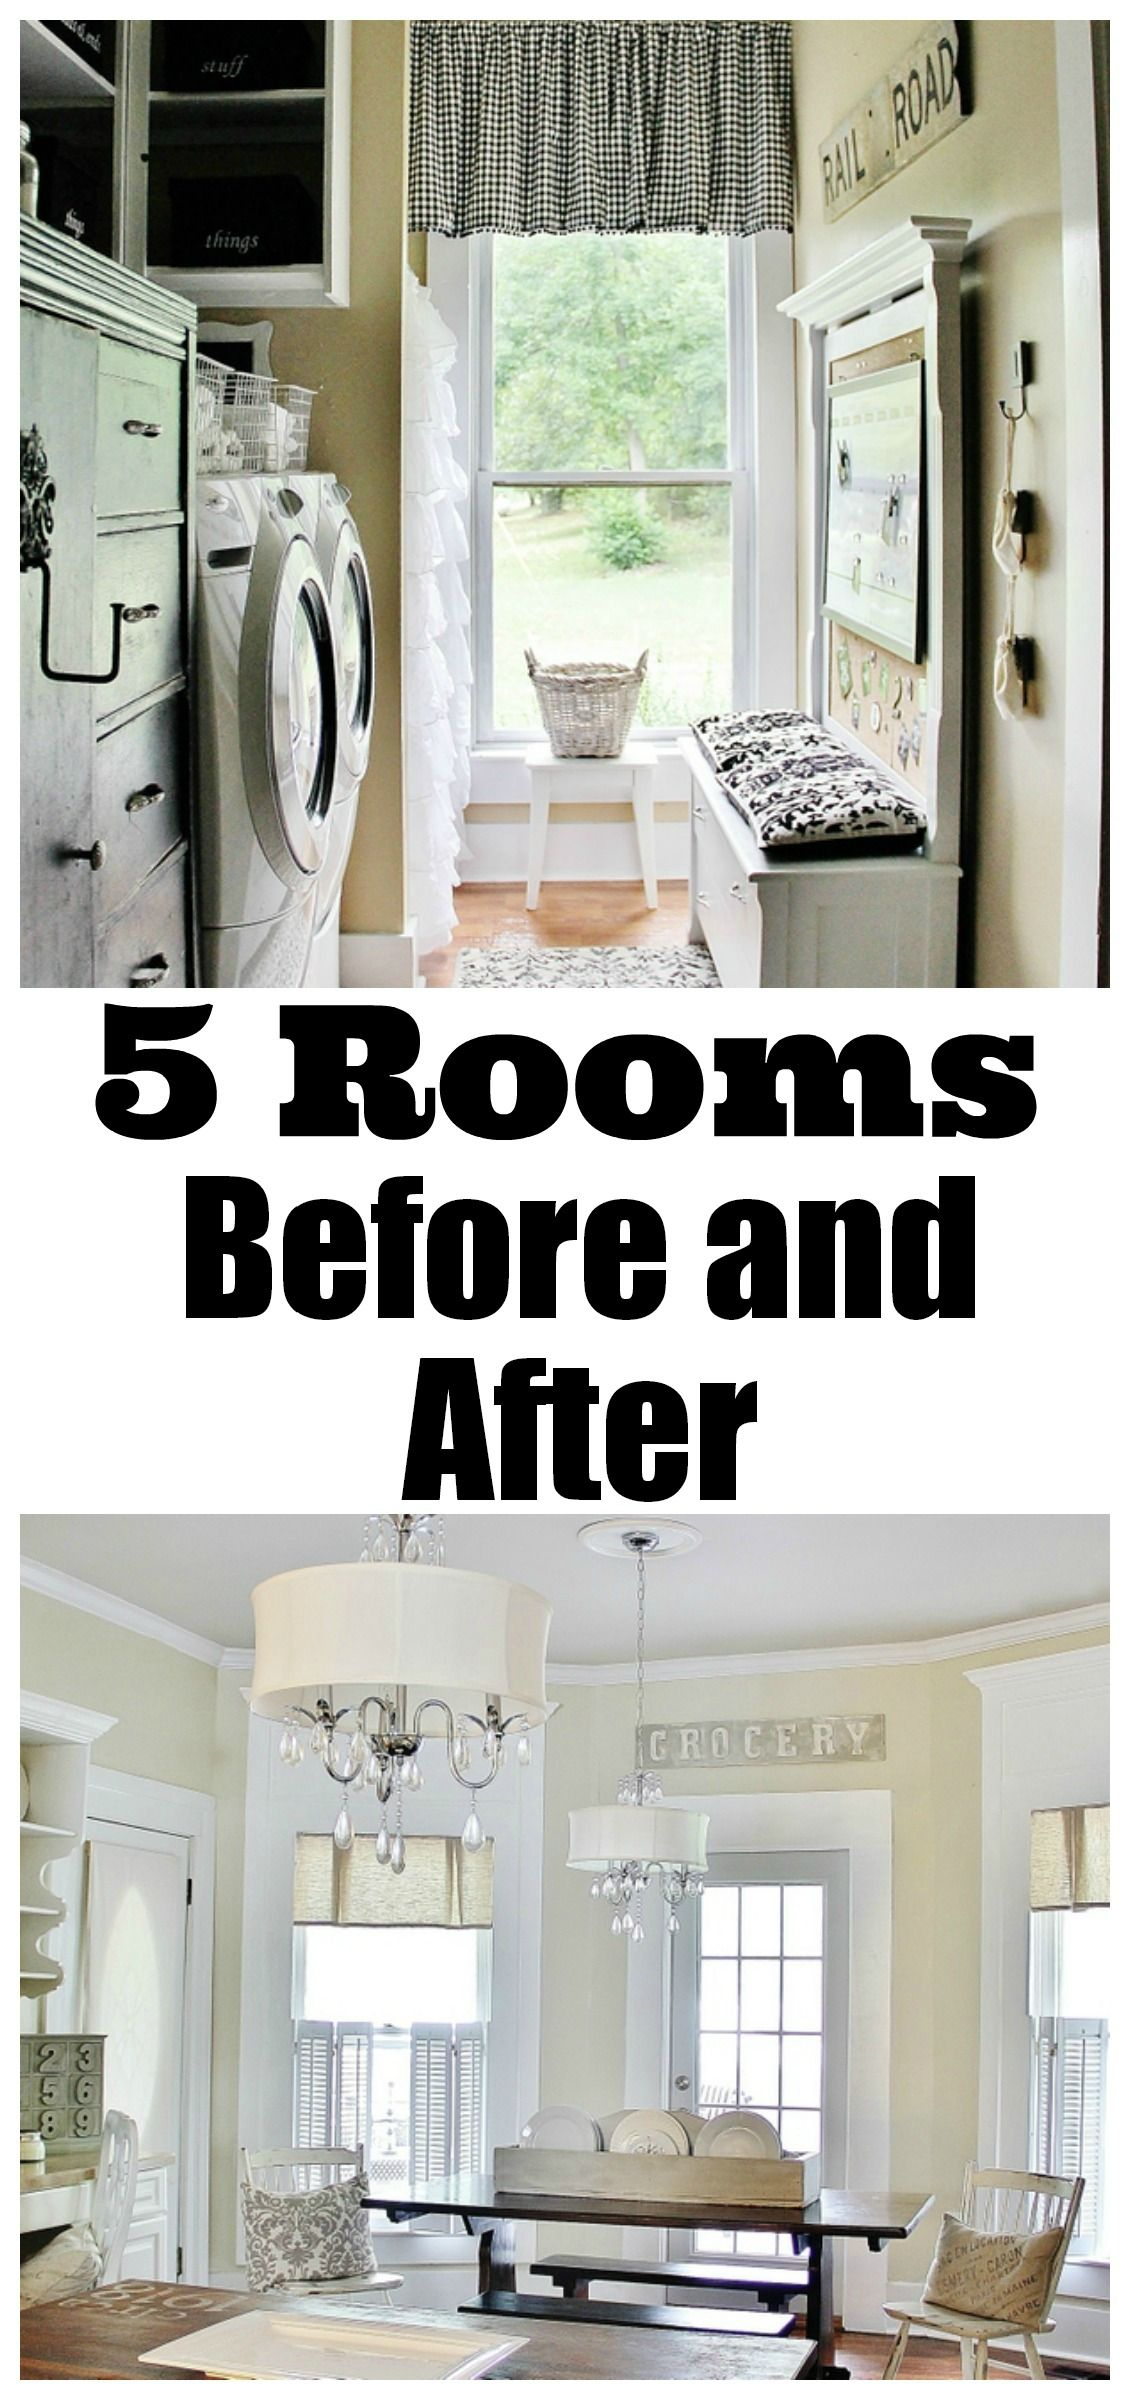 Short Curtains For Living Room Five Before And After Room Makeovers Farms Curtain Ideas And